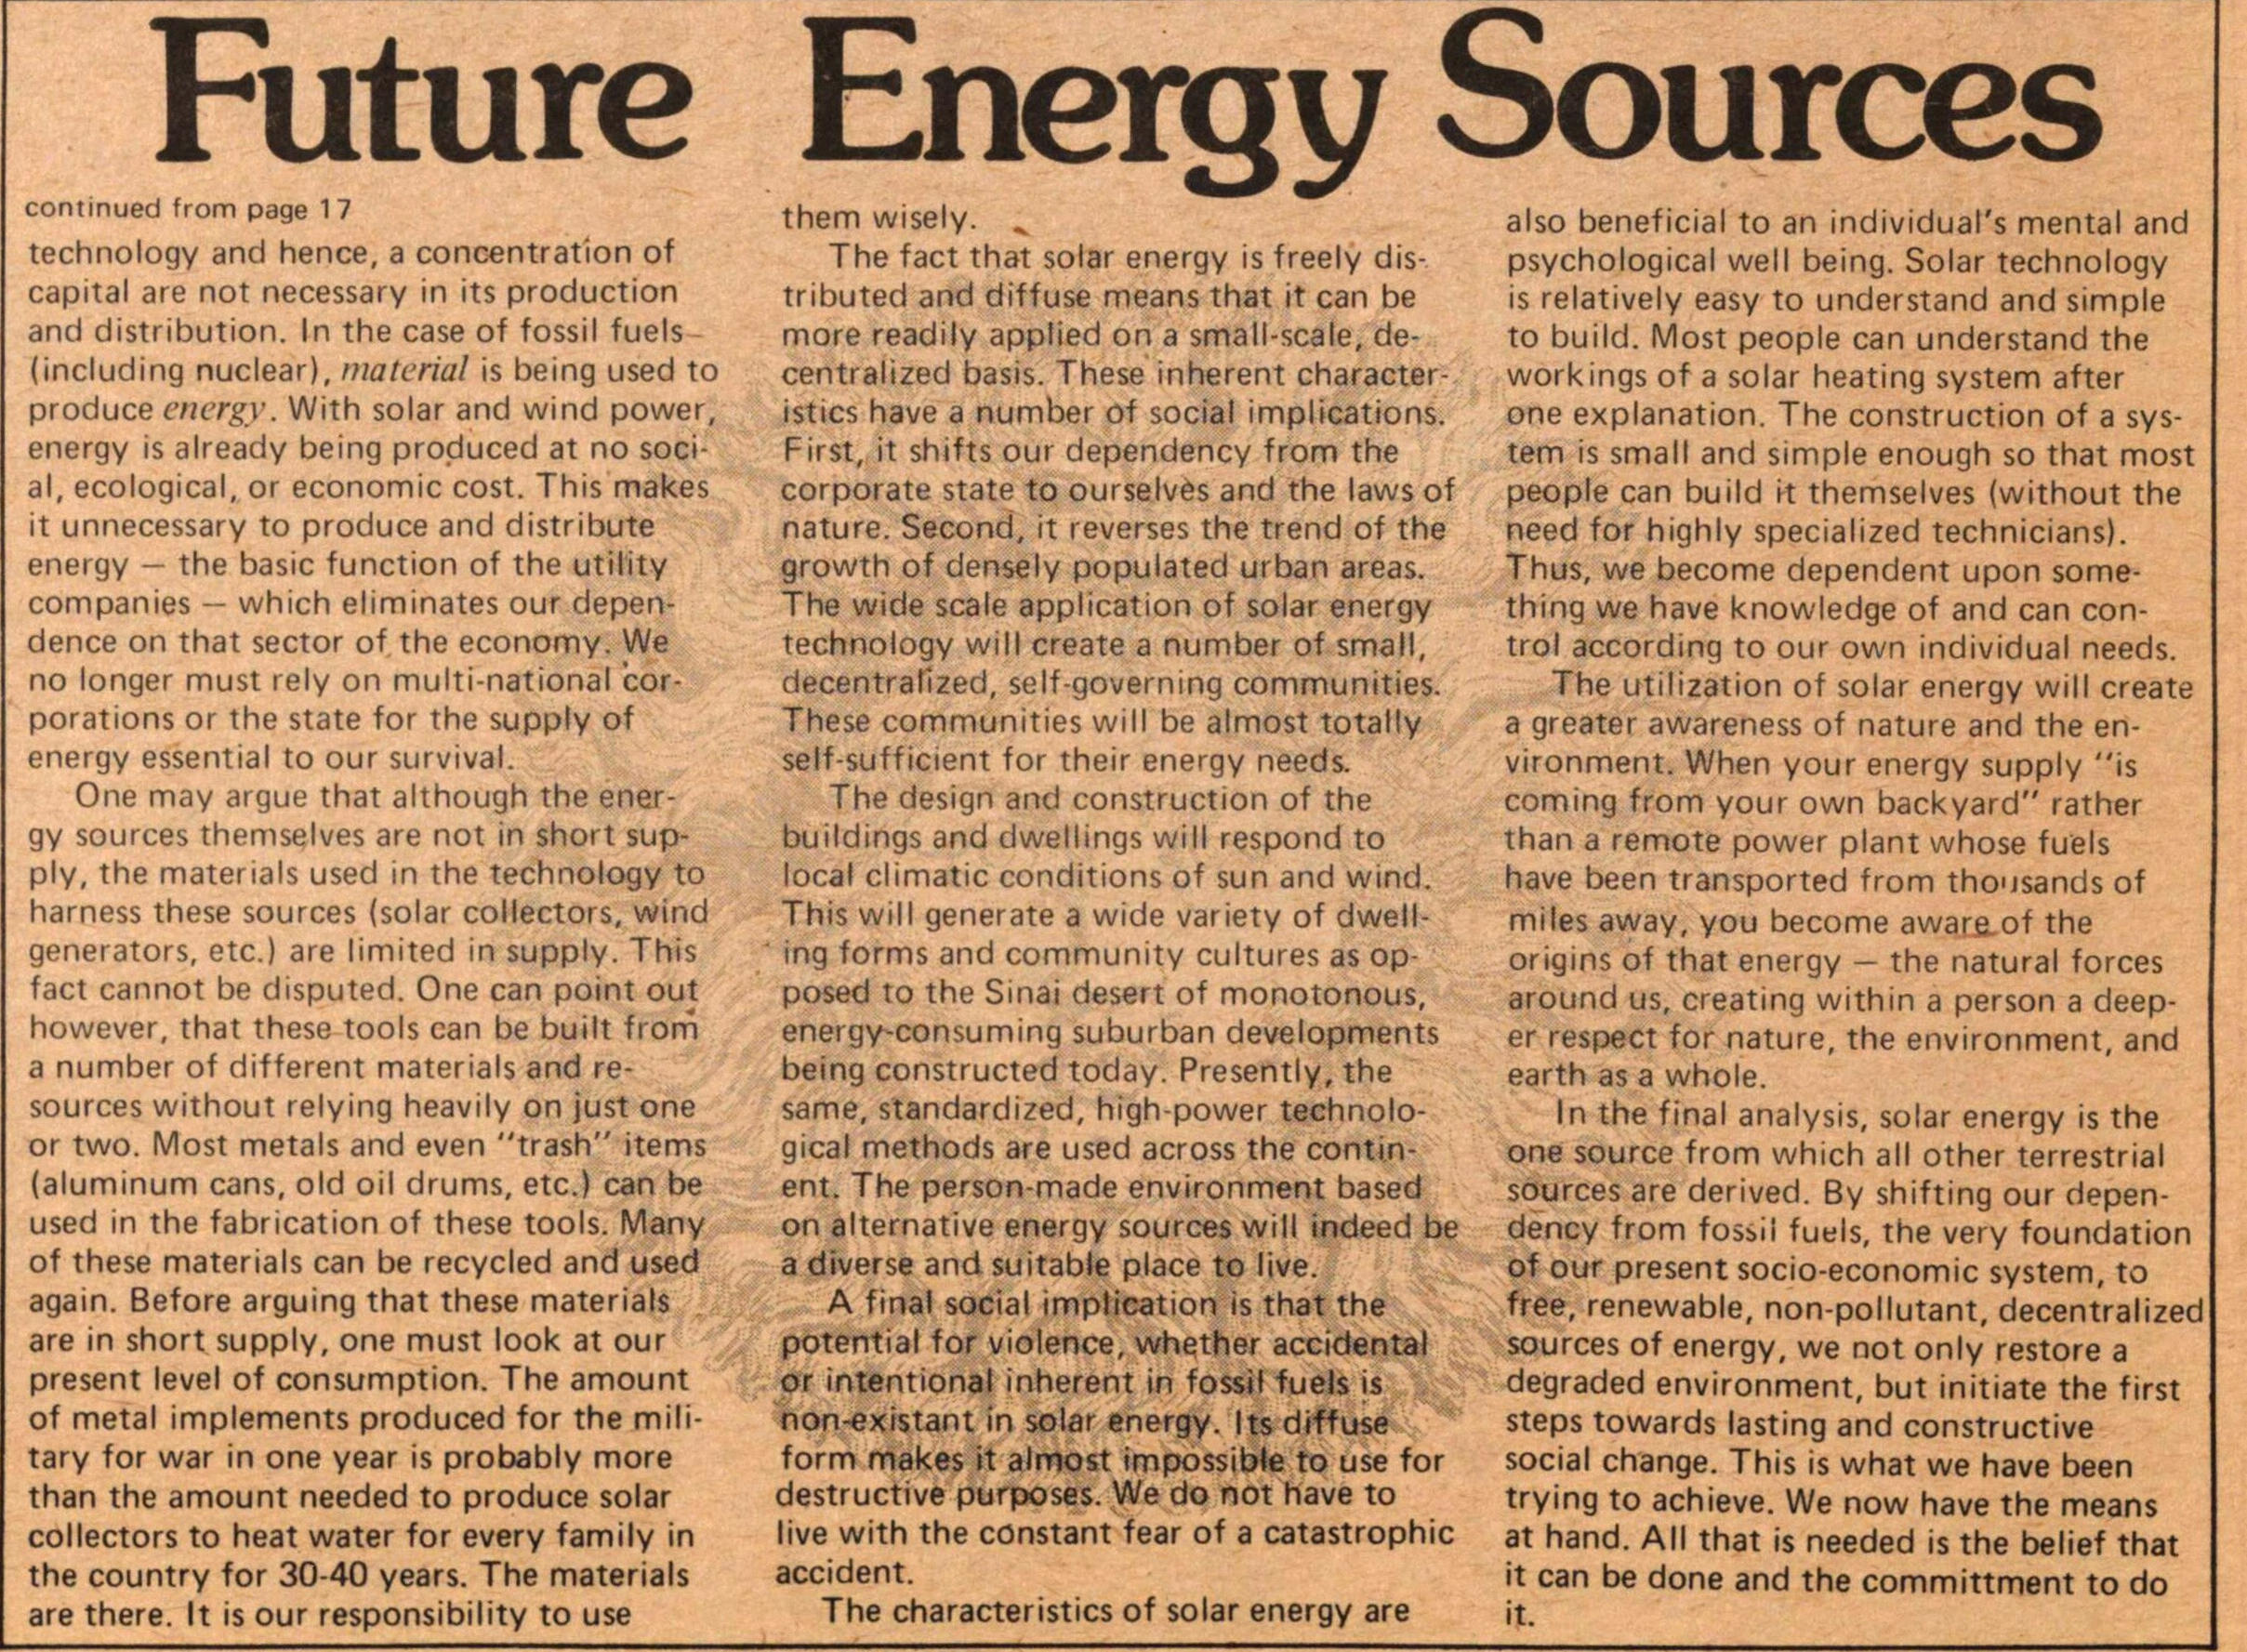 Sun Vs Nuclear Power Future Energy Sources Reshape American Dream image